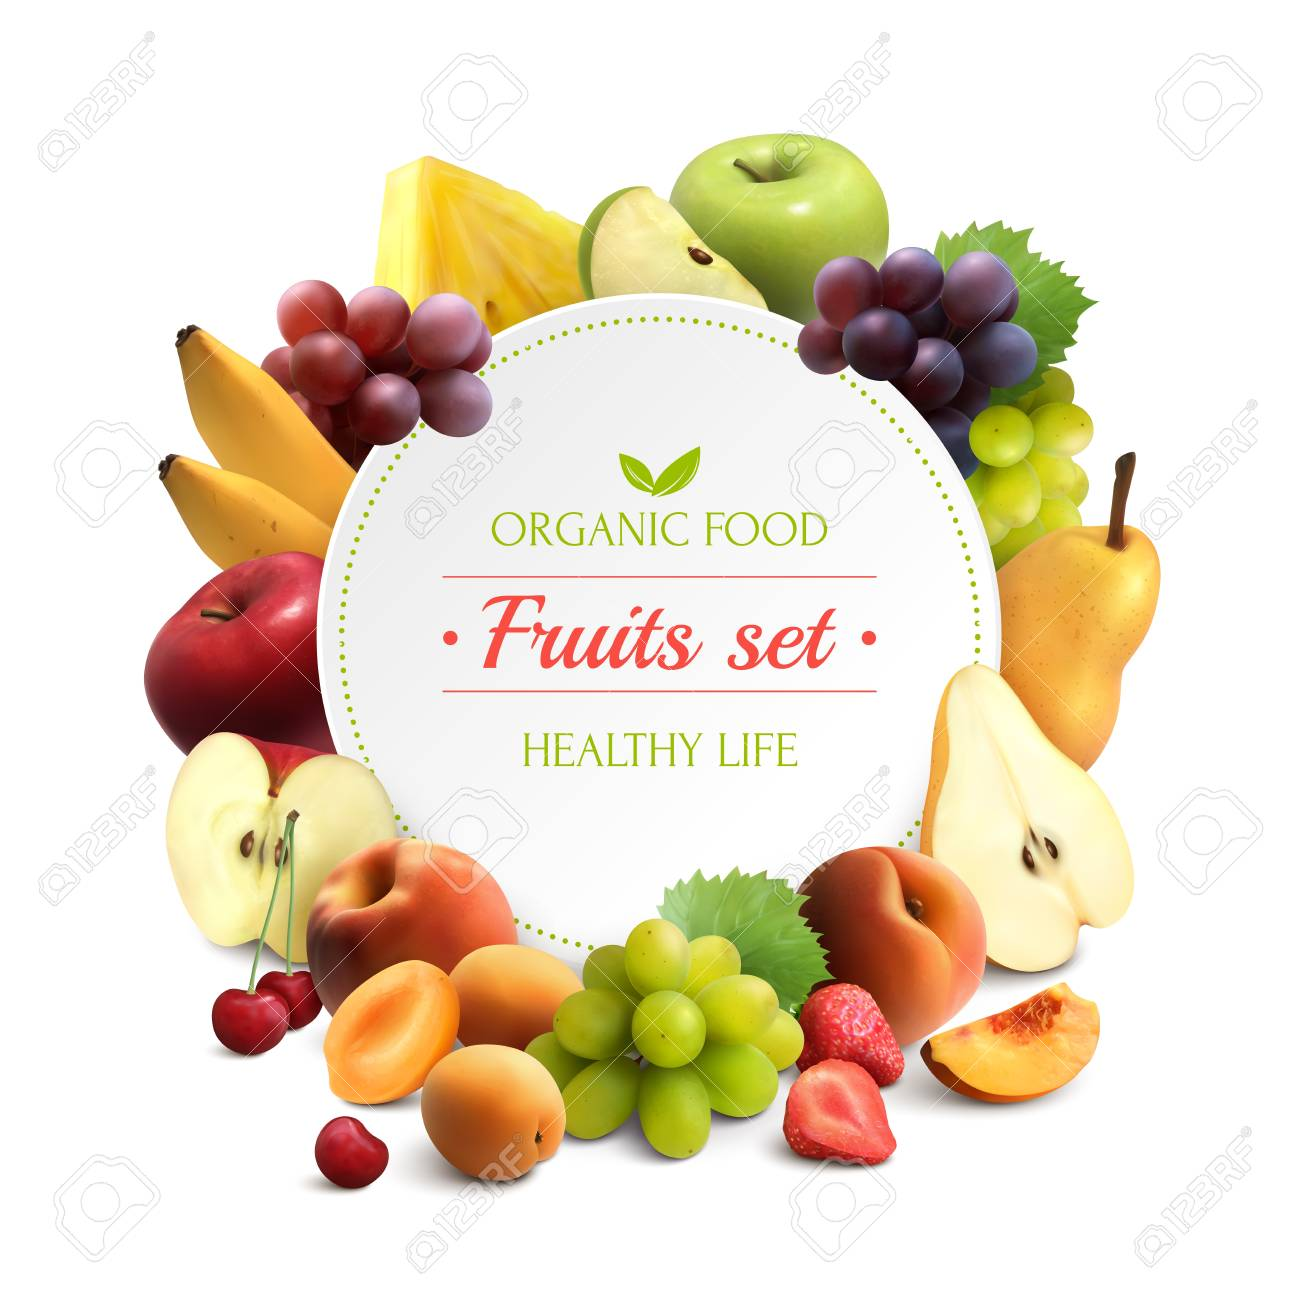 Organic food colorful background with fruits frame and round place for text realistic vector illustration - 108938285